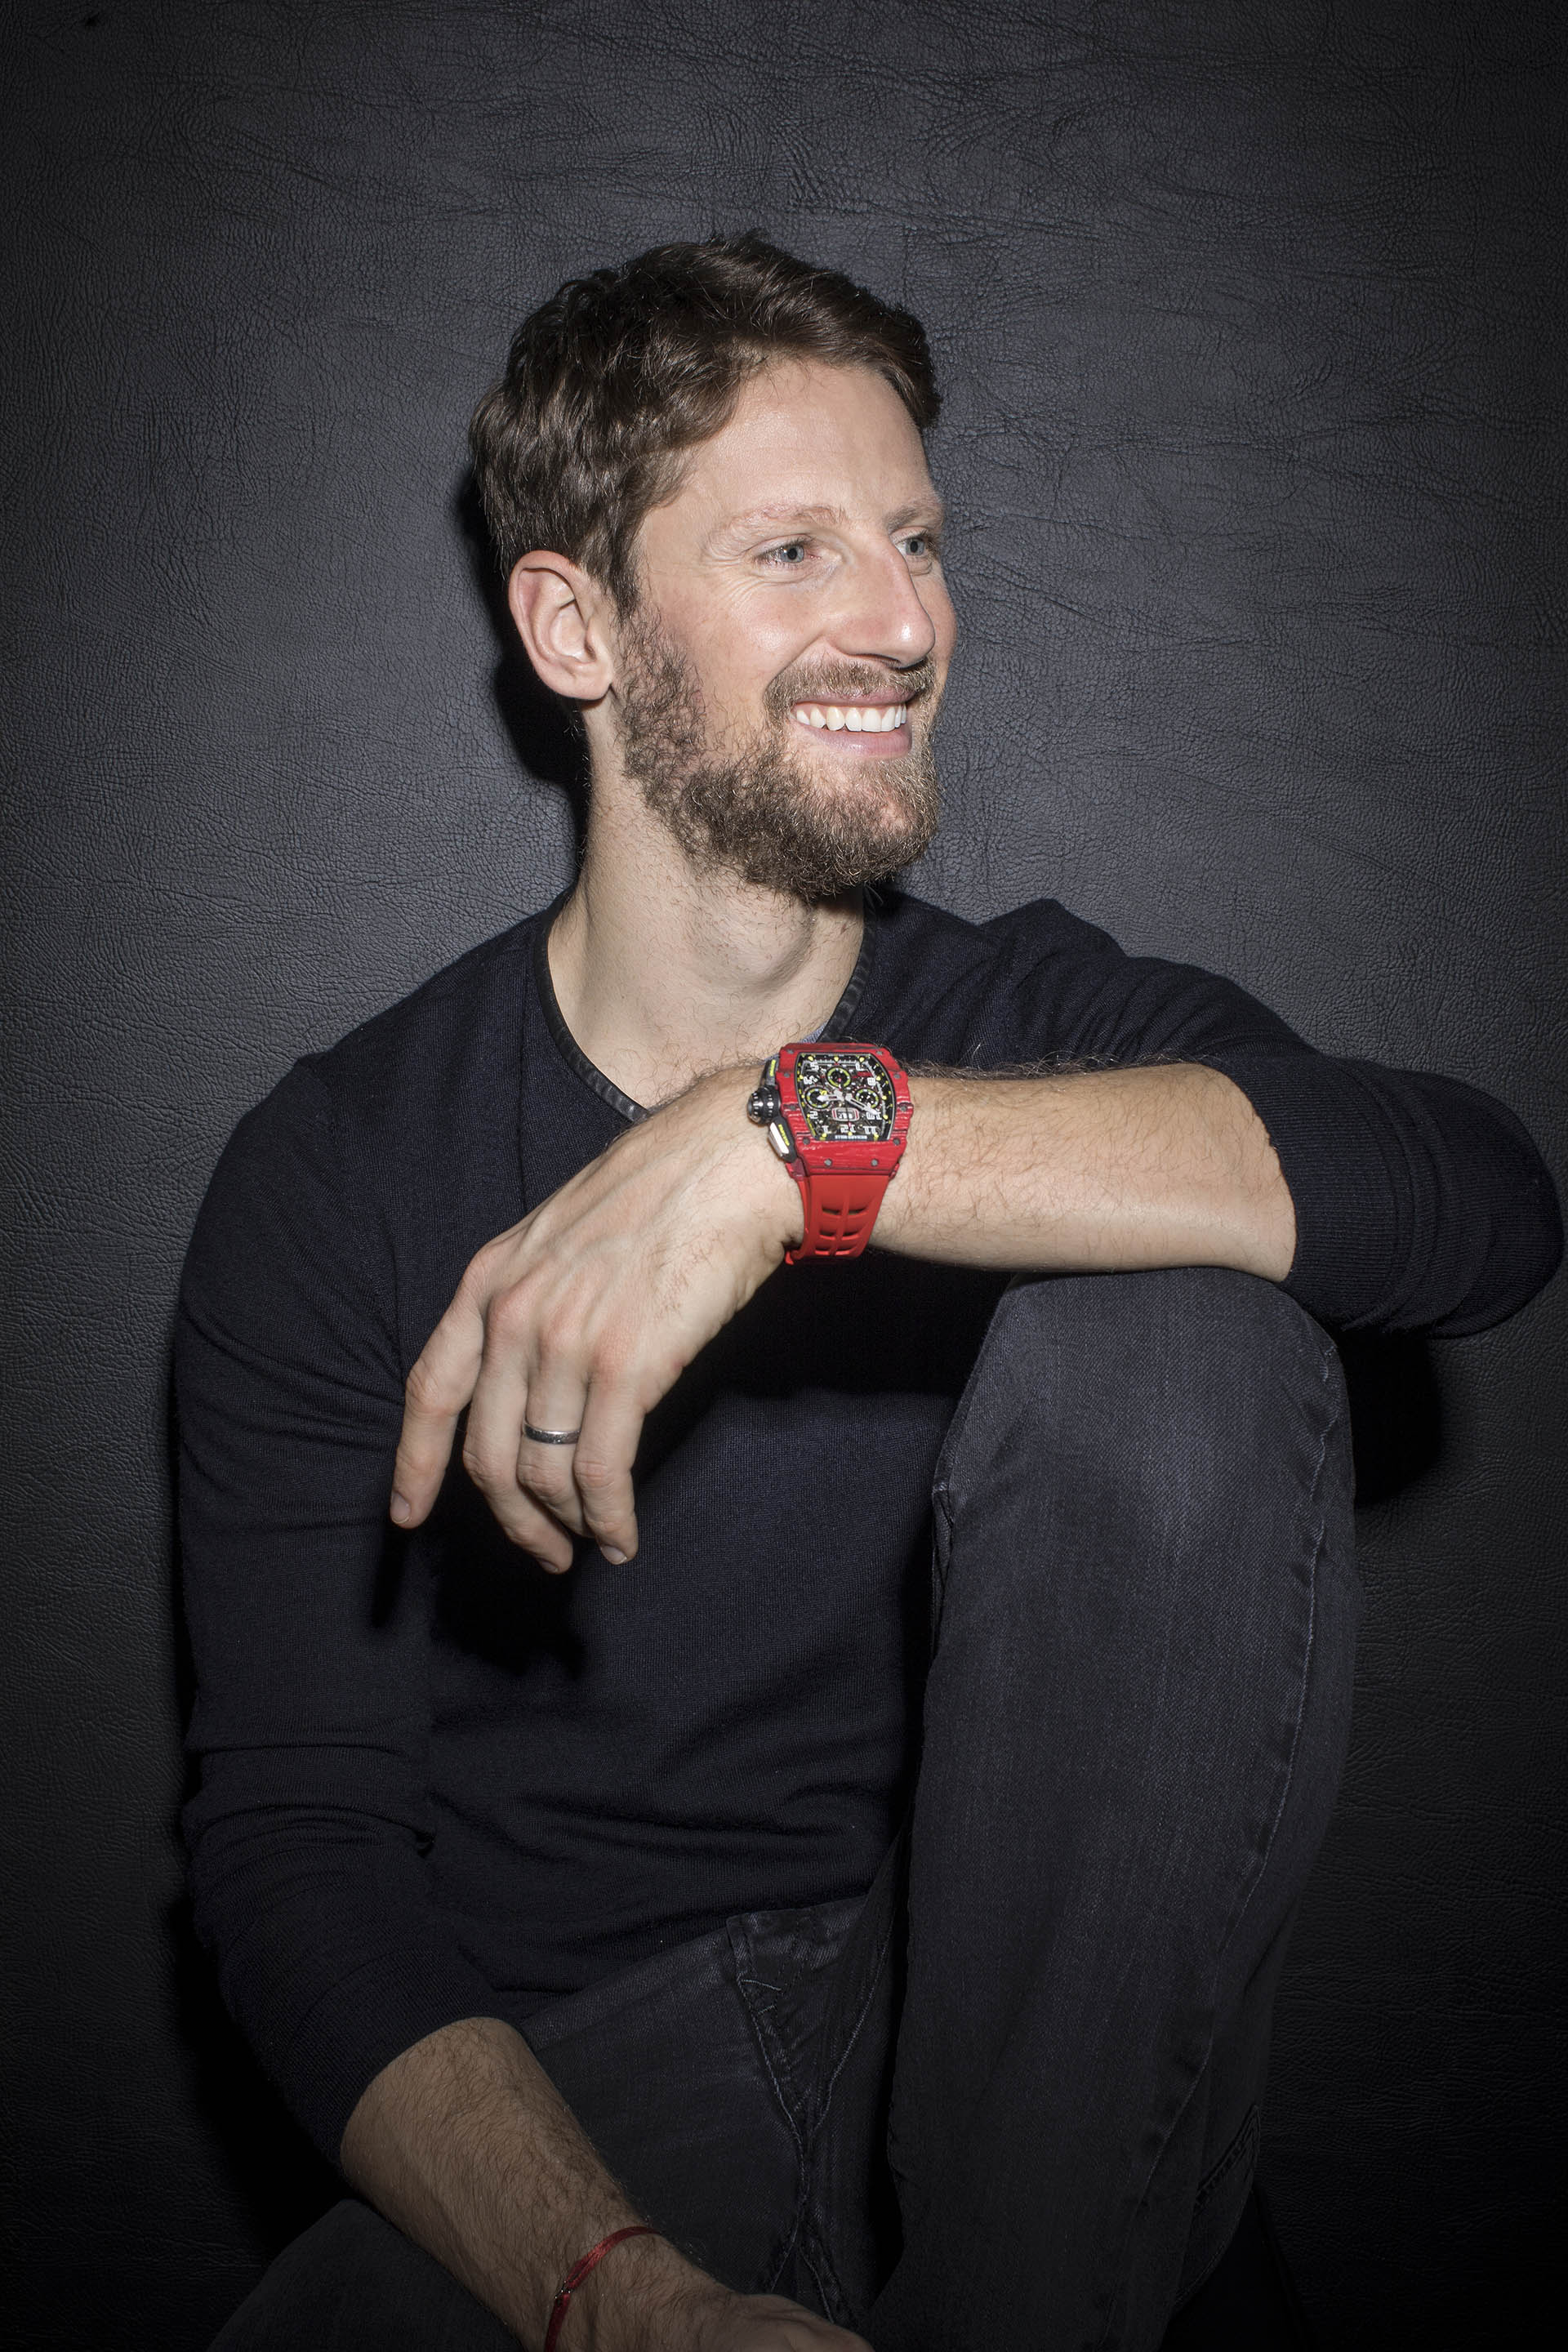 Romain Grosjean (Richard Mille)